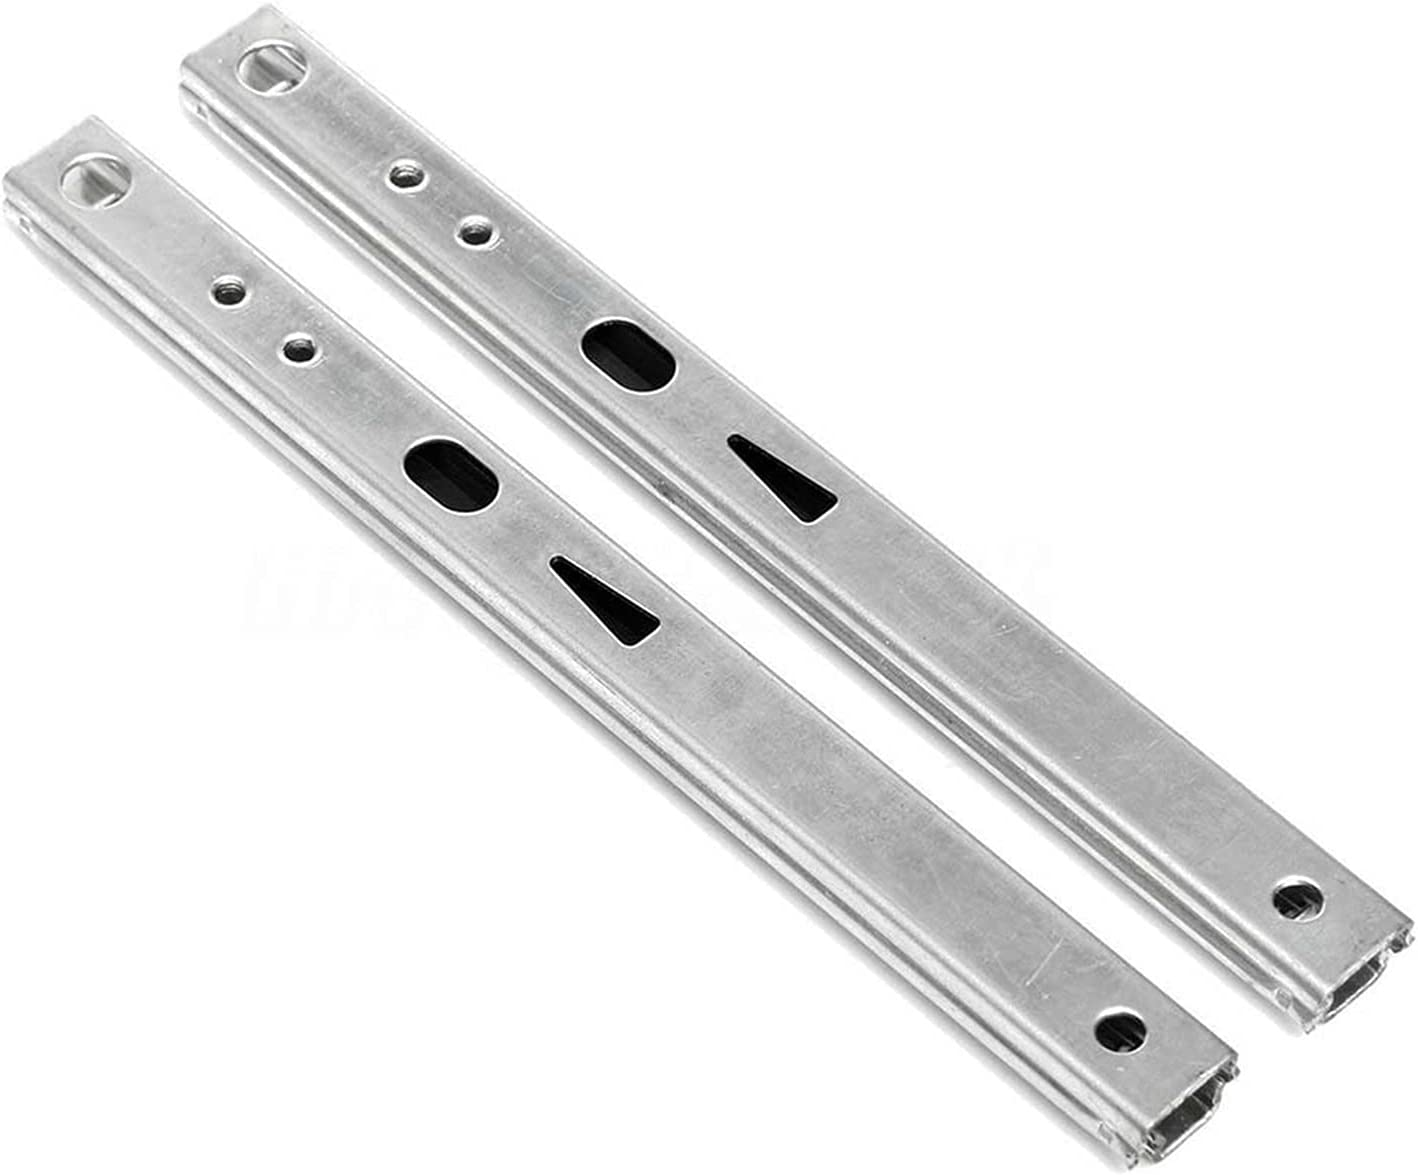 FRSDMY Two Max 68% OFF Ranking integrated 1st place Sections 17mm Wide Steel Fold Furniture Fitt Hardware